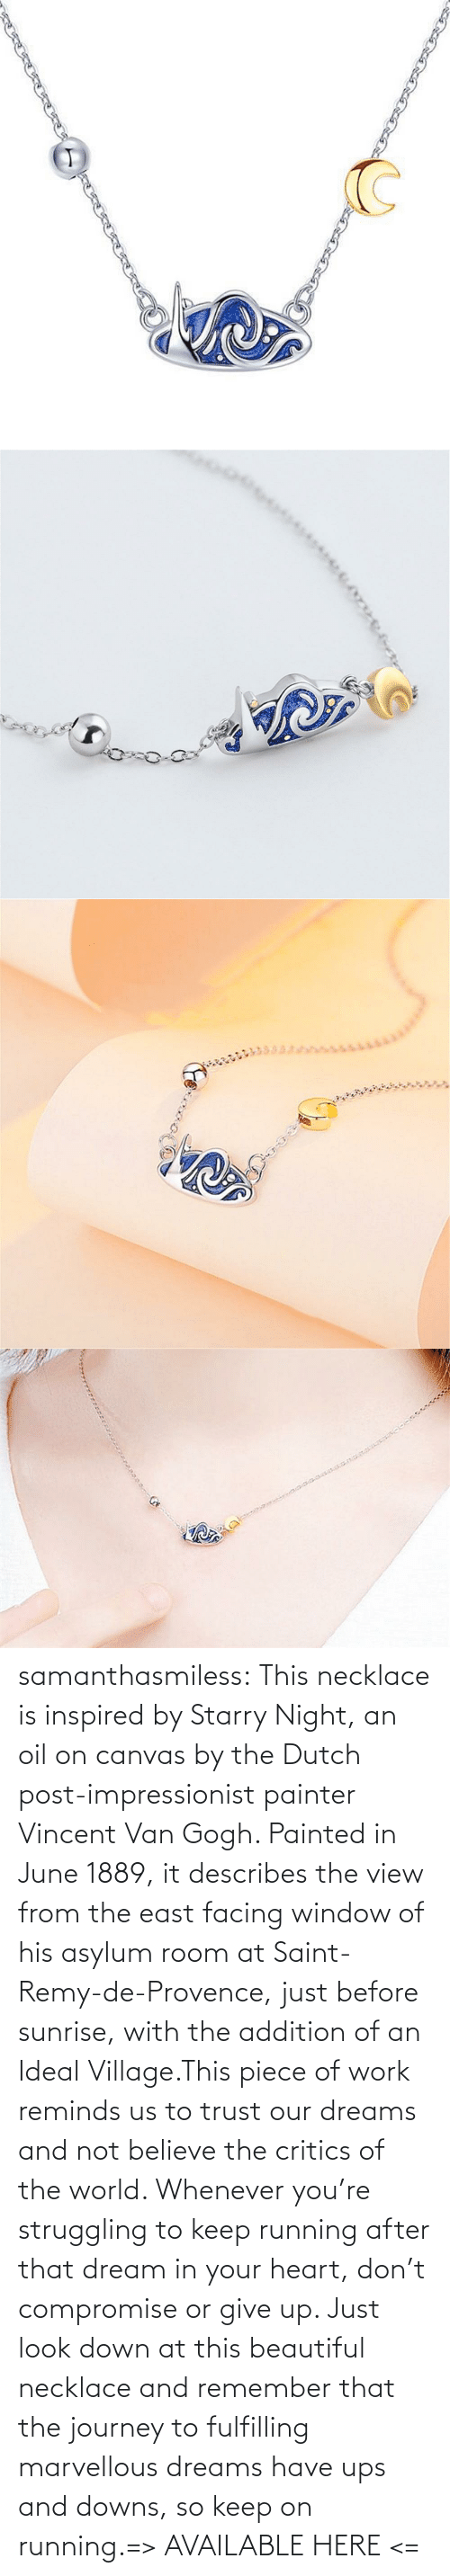 Beautiful, Journey, and Tumblr: samanthasmiless:  This necklace is inspired by Starry Night, an oil on canvas by the Dutch post-impressionist painter Vincent Van Gogh. Painted in June 1889, it describes the view from the east facing window of his asylum room at Saint-Remy-de-Provence, just before sunrise, with the addition of an Ideal Village.This piece of work reminds us to trust our dreams and not believe the critics of the world. Whenever you're struggling to keep running after that dream in your heart, don't compromise or give up. Just look down at this beautiful necklace and remember that the journey to fulfilling marvellous dreams have ups and downs, so keep on running.=> AVAILABLE HERE <=